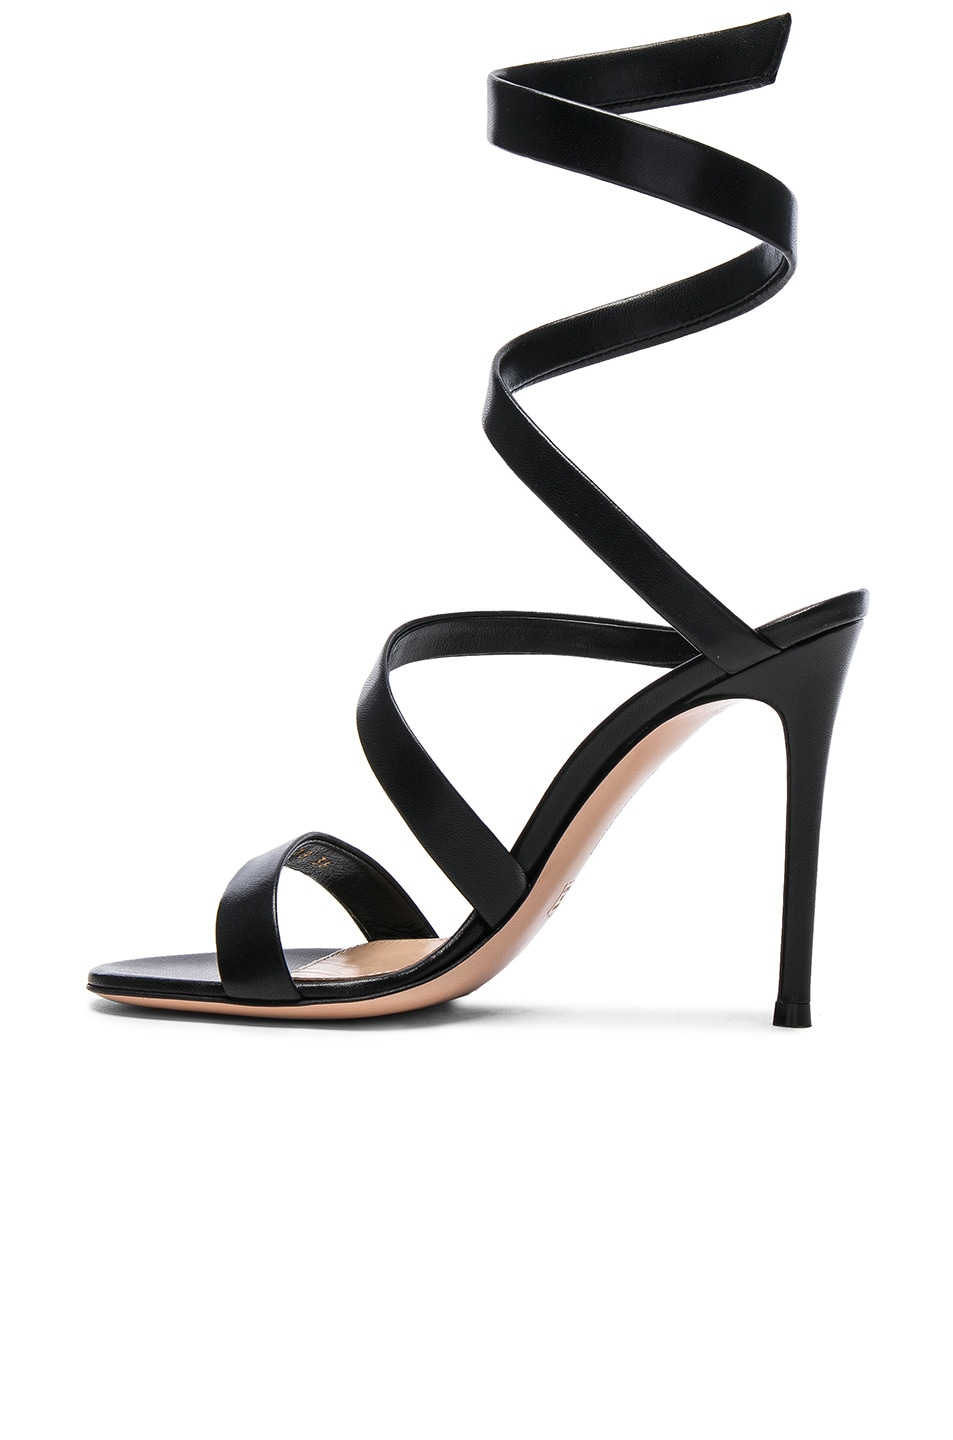 Image 5 of Gianvito Rossi Leather Opera Sandals in Black